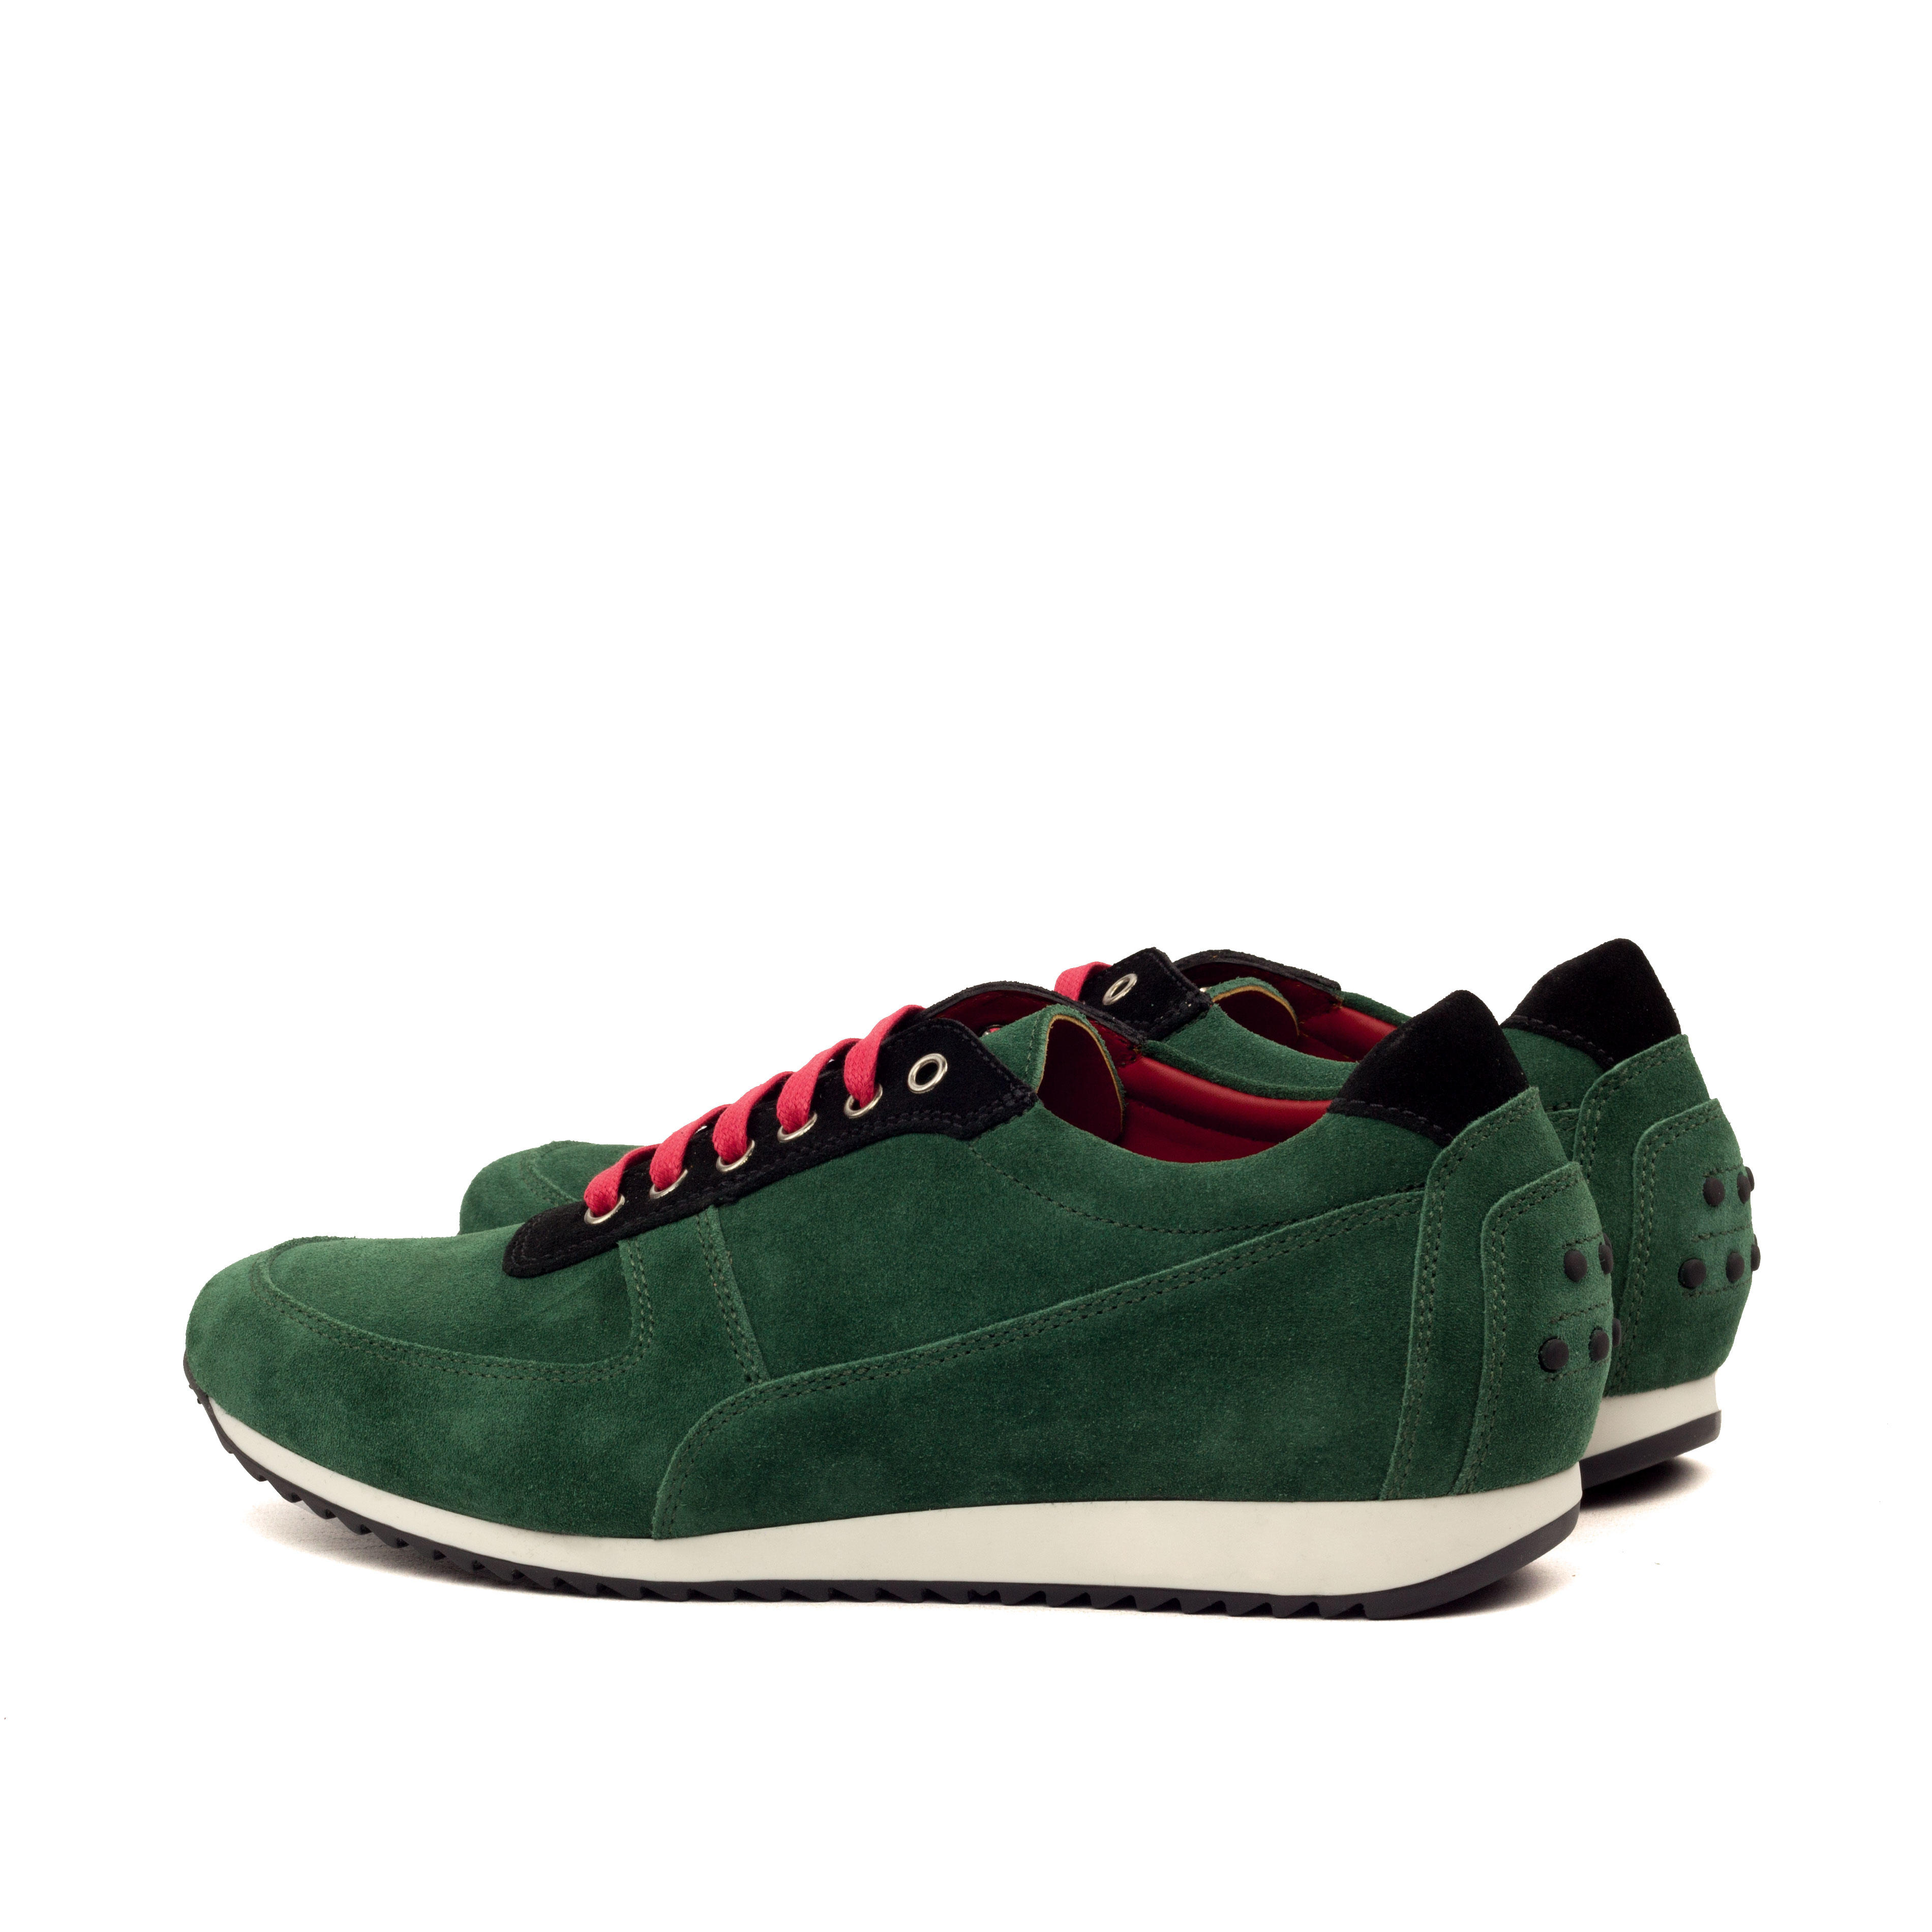 MANOR OF LONDON 'The Runner' Green & Black Suede Trainer Luxury Custom Initials Monogrammed Back Side View